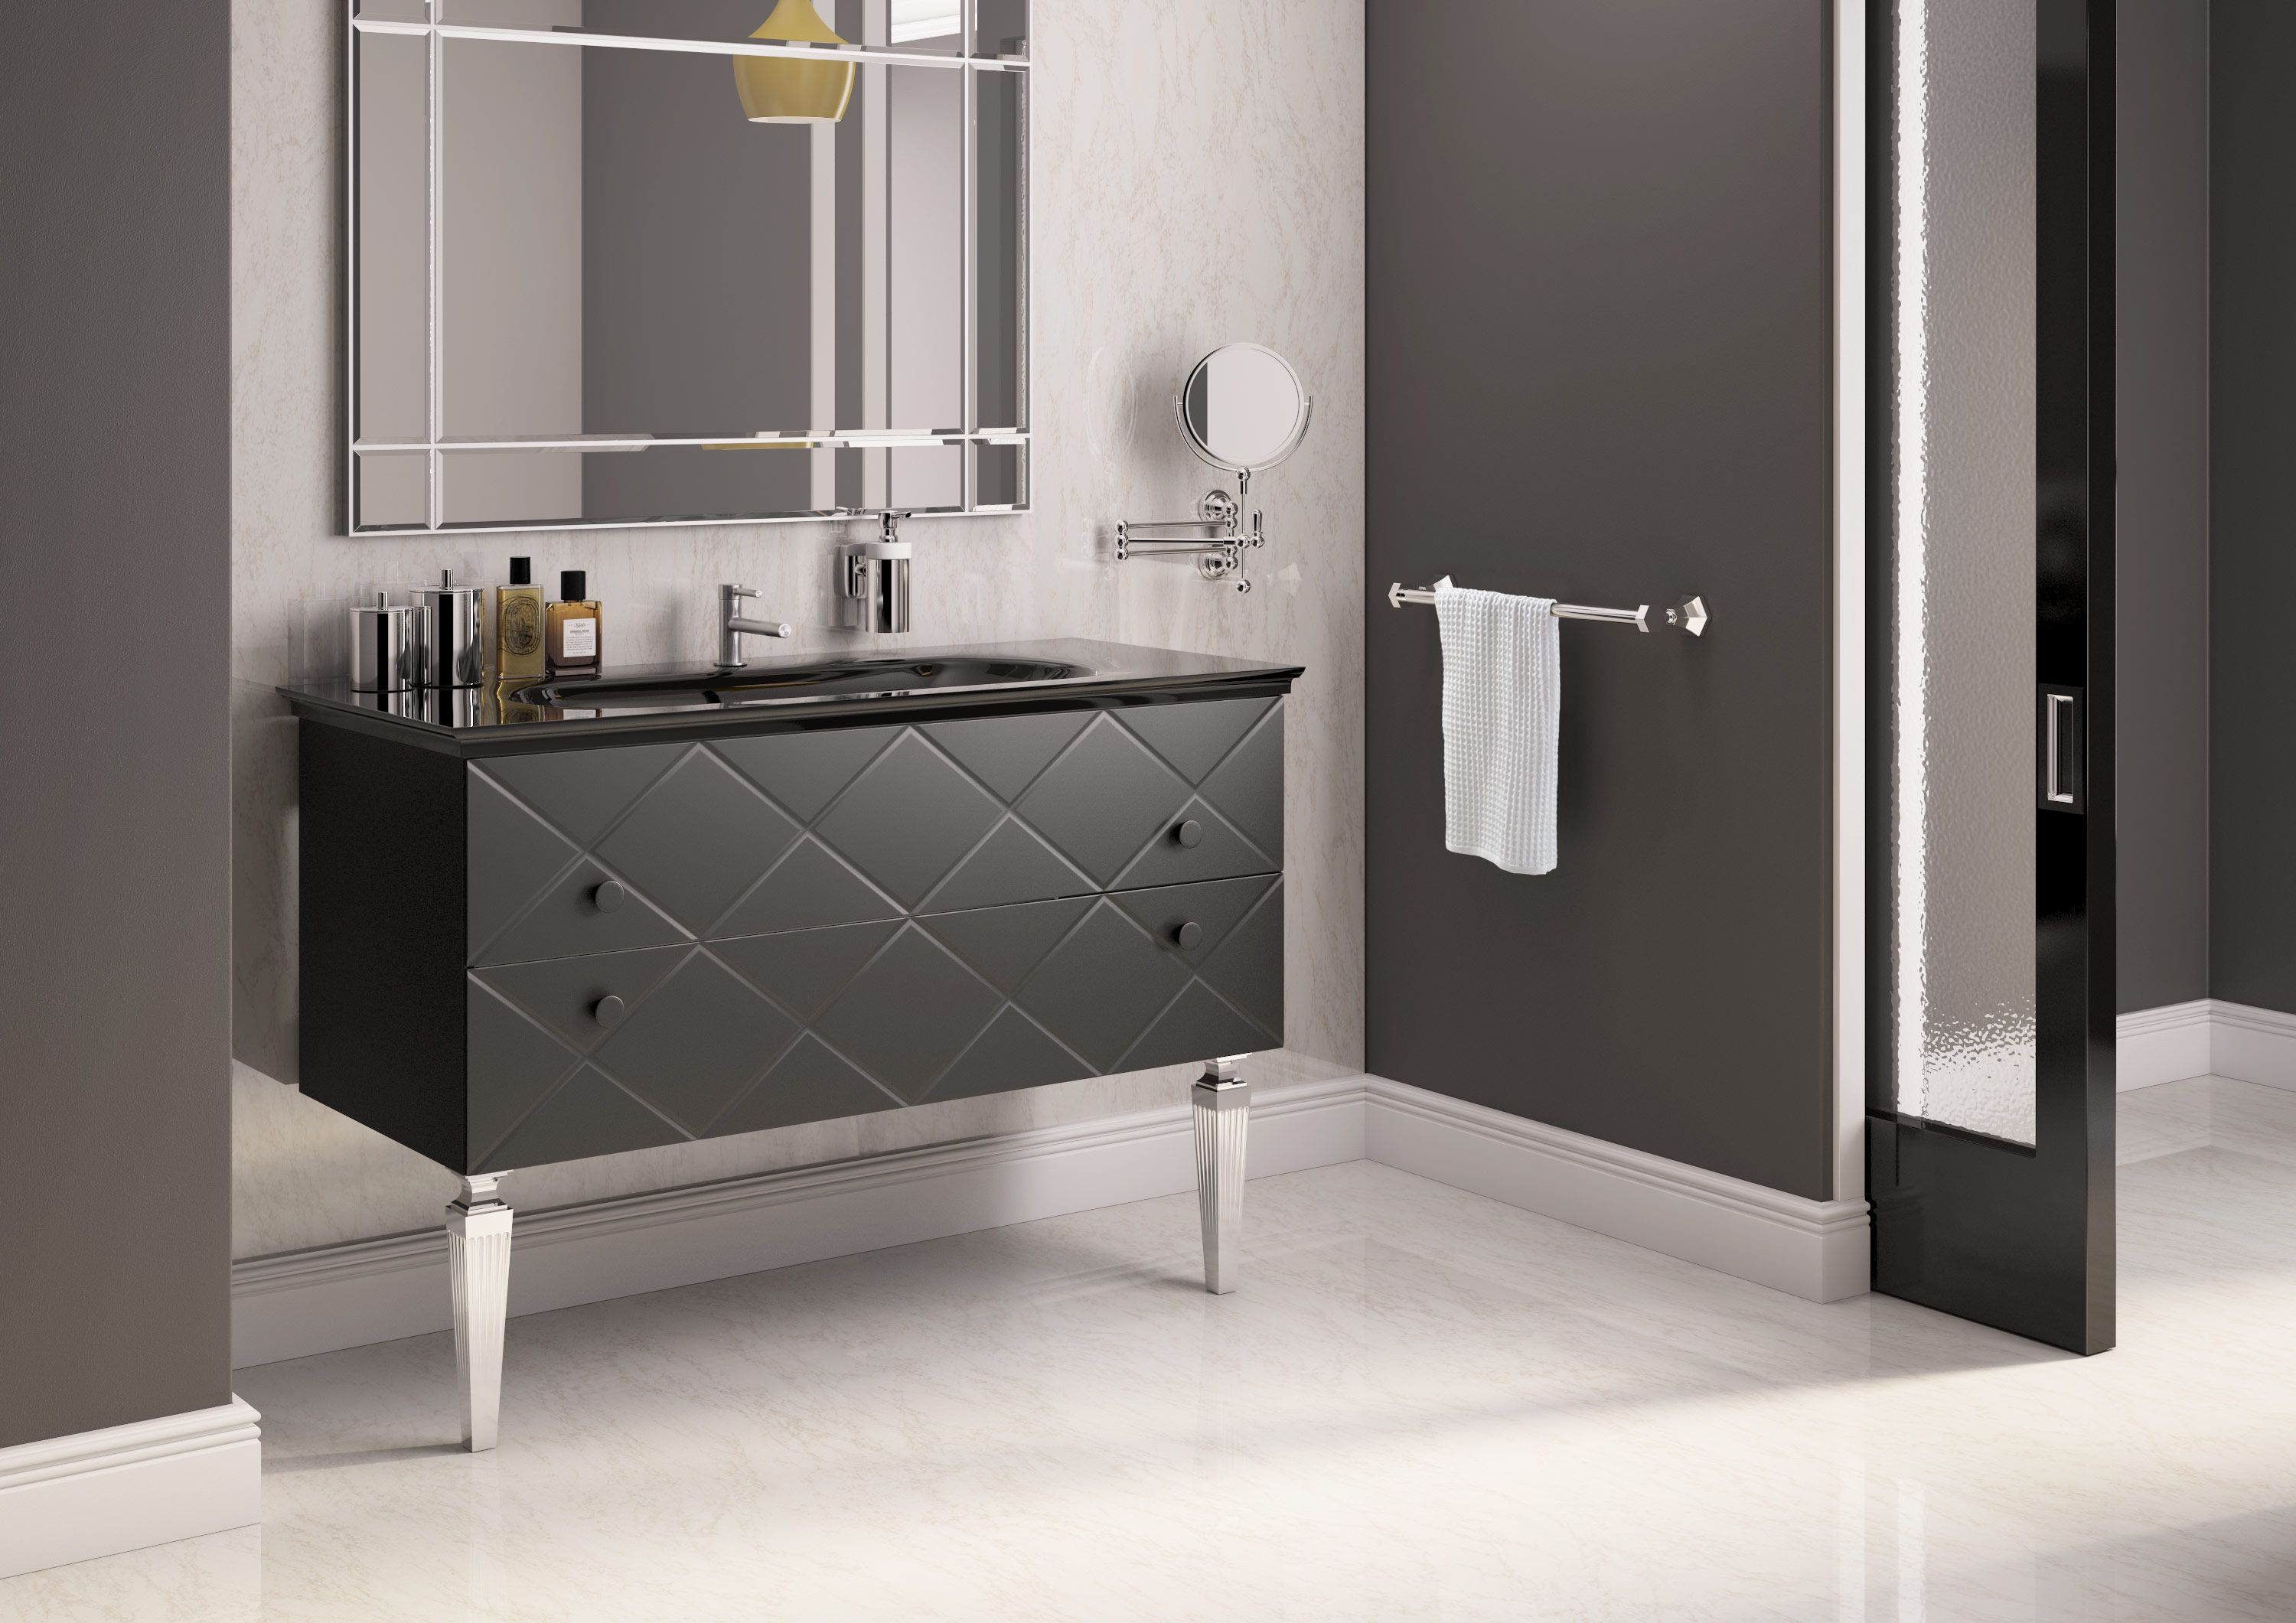 Decor Unit Cphart Bathroomideas Bathroom Furniture Bathroom Accessories Luxury Bathroom Decor